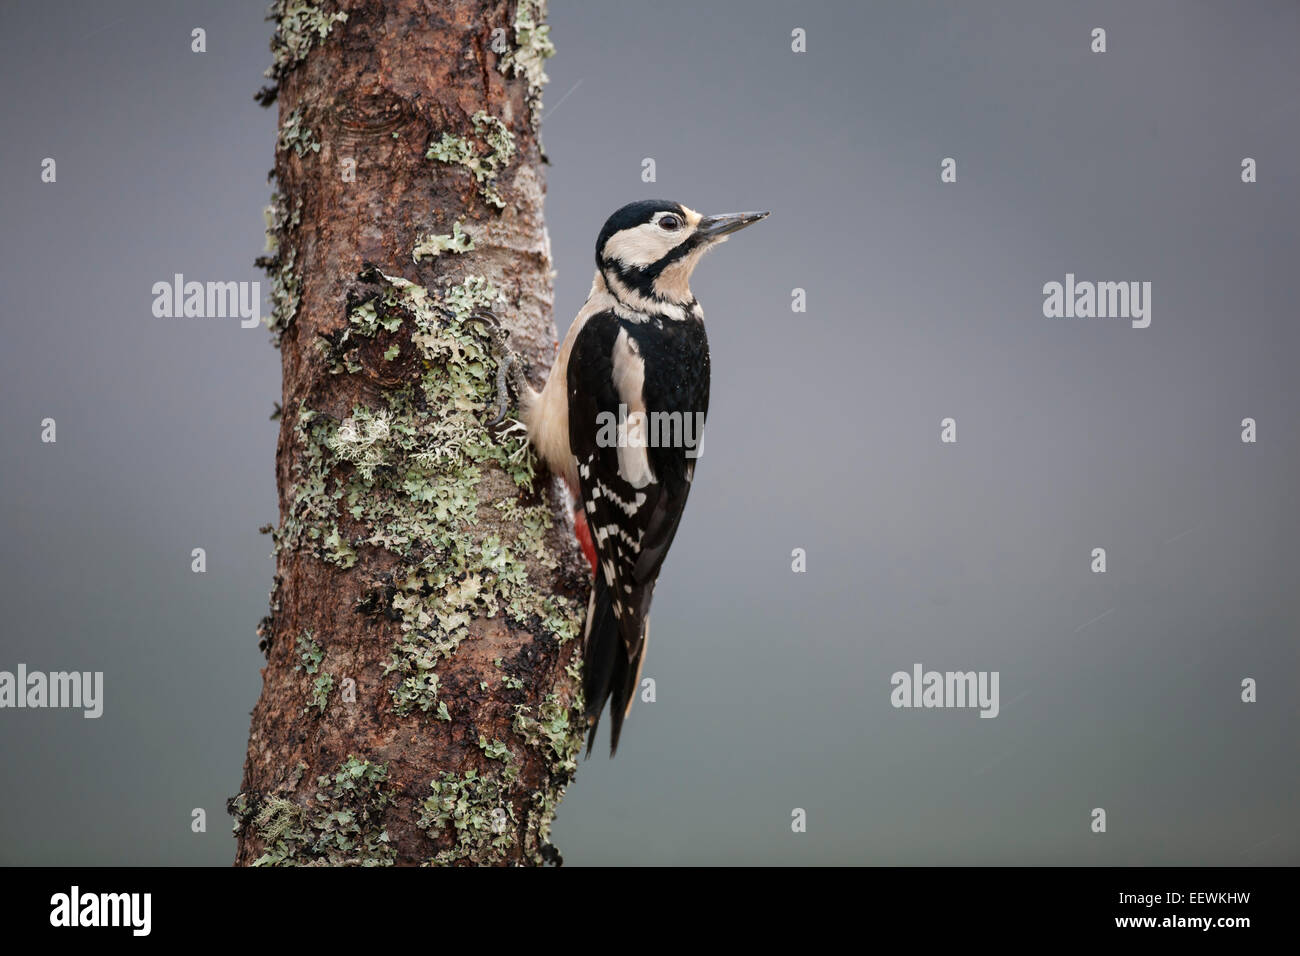 Great Spotted woodpecker Dendrocopos Major in profile clinging to a lichen covered birch tree and looking away - Stock Image